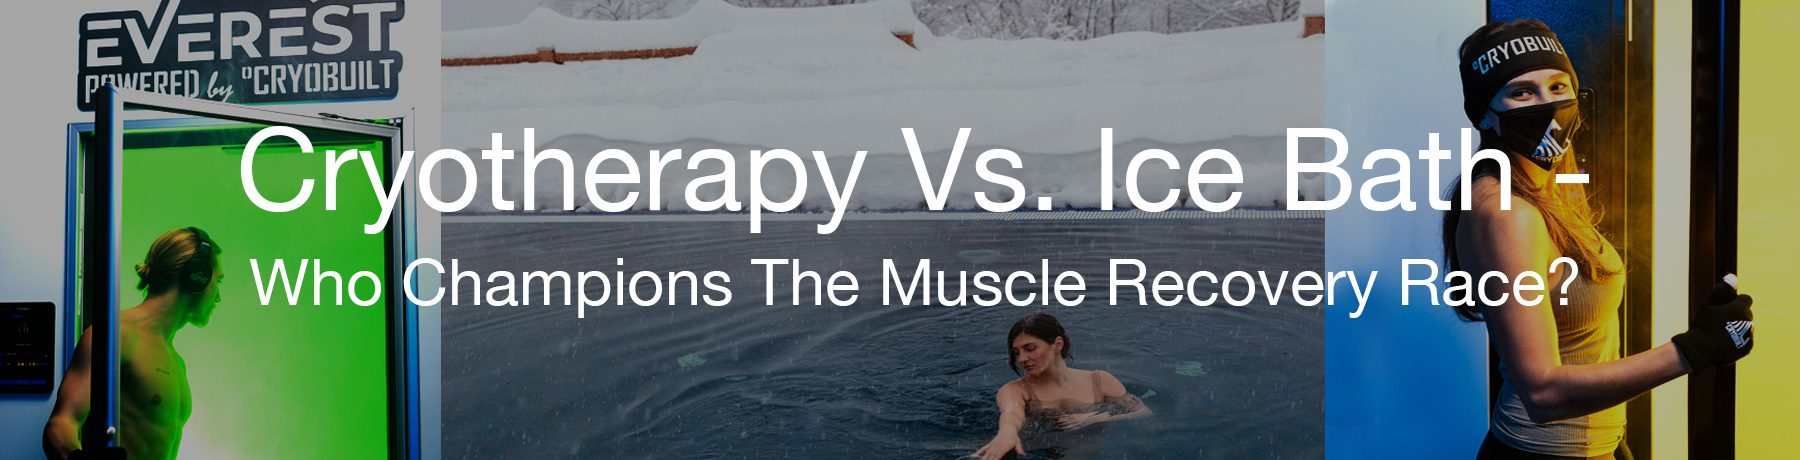 Cryotherapy Vs Ice Bath Collage